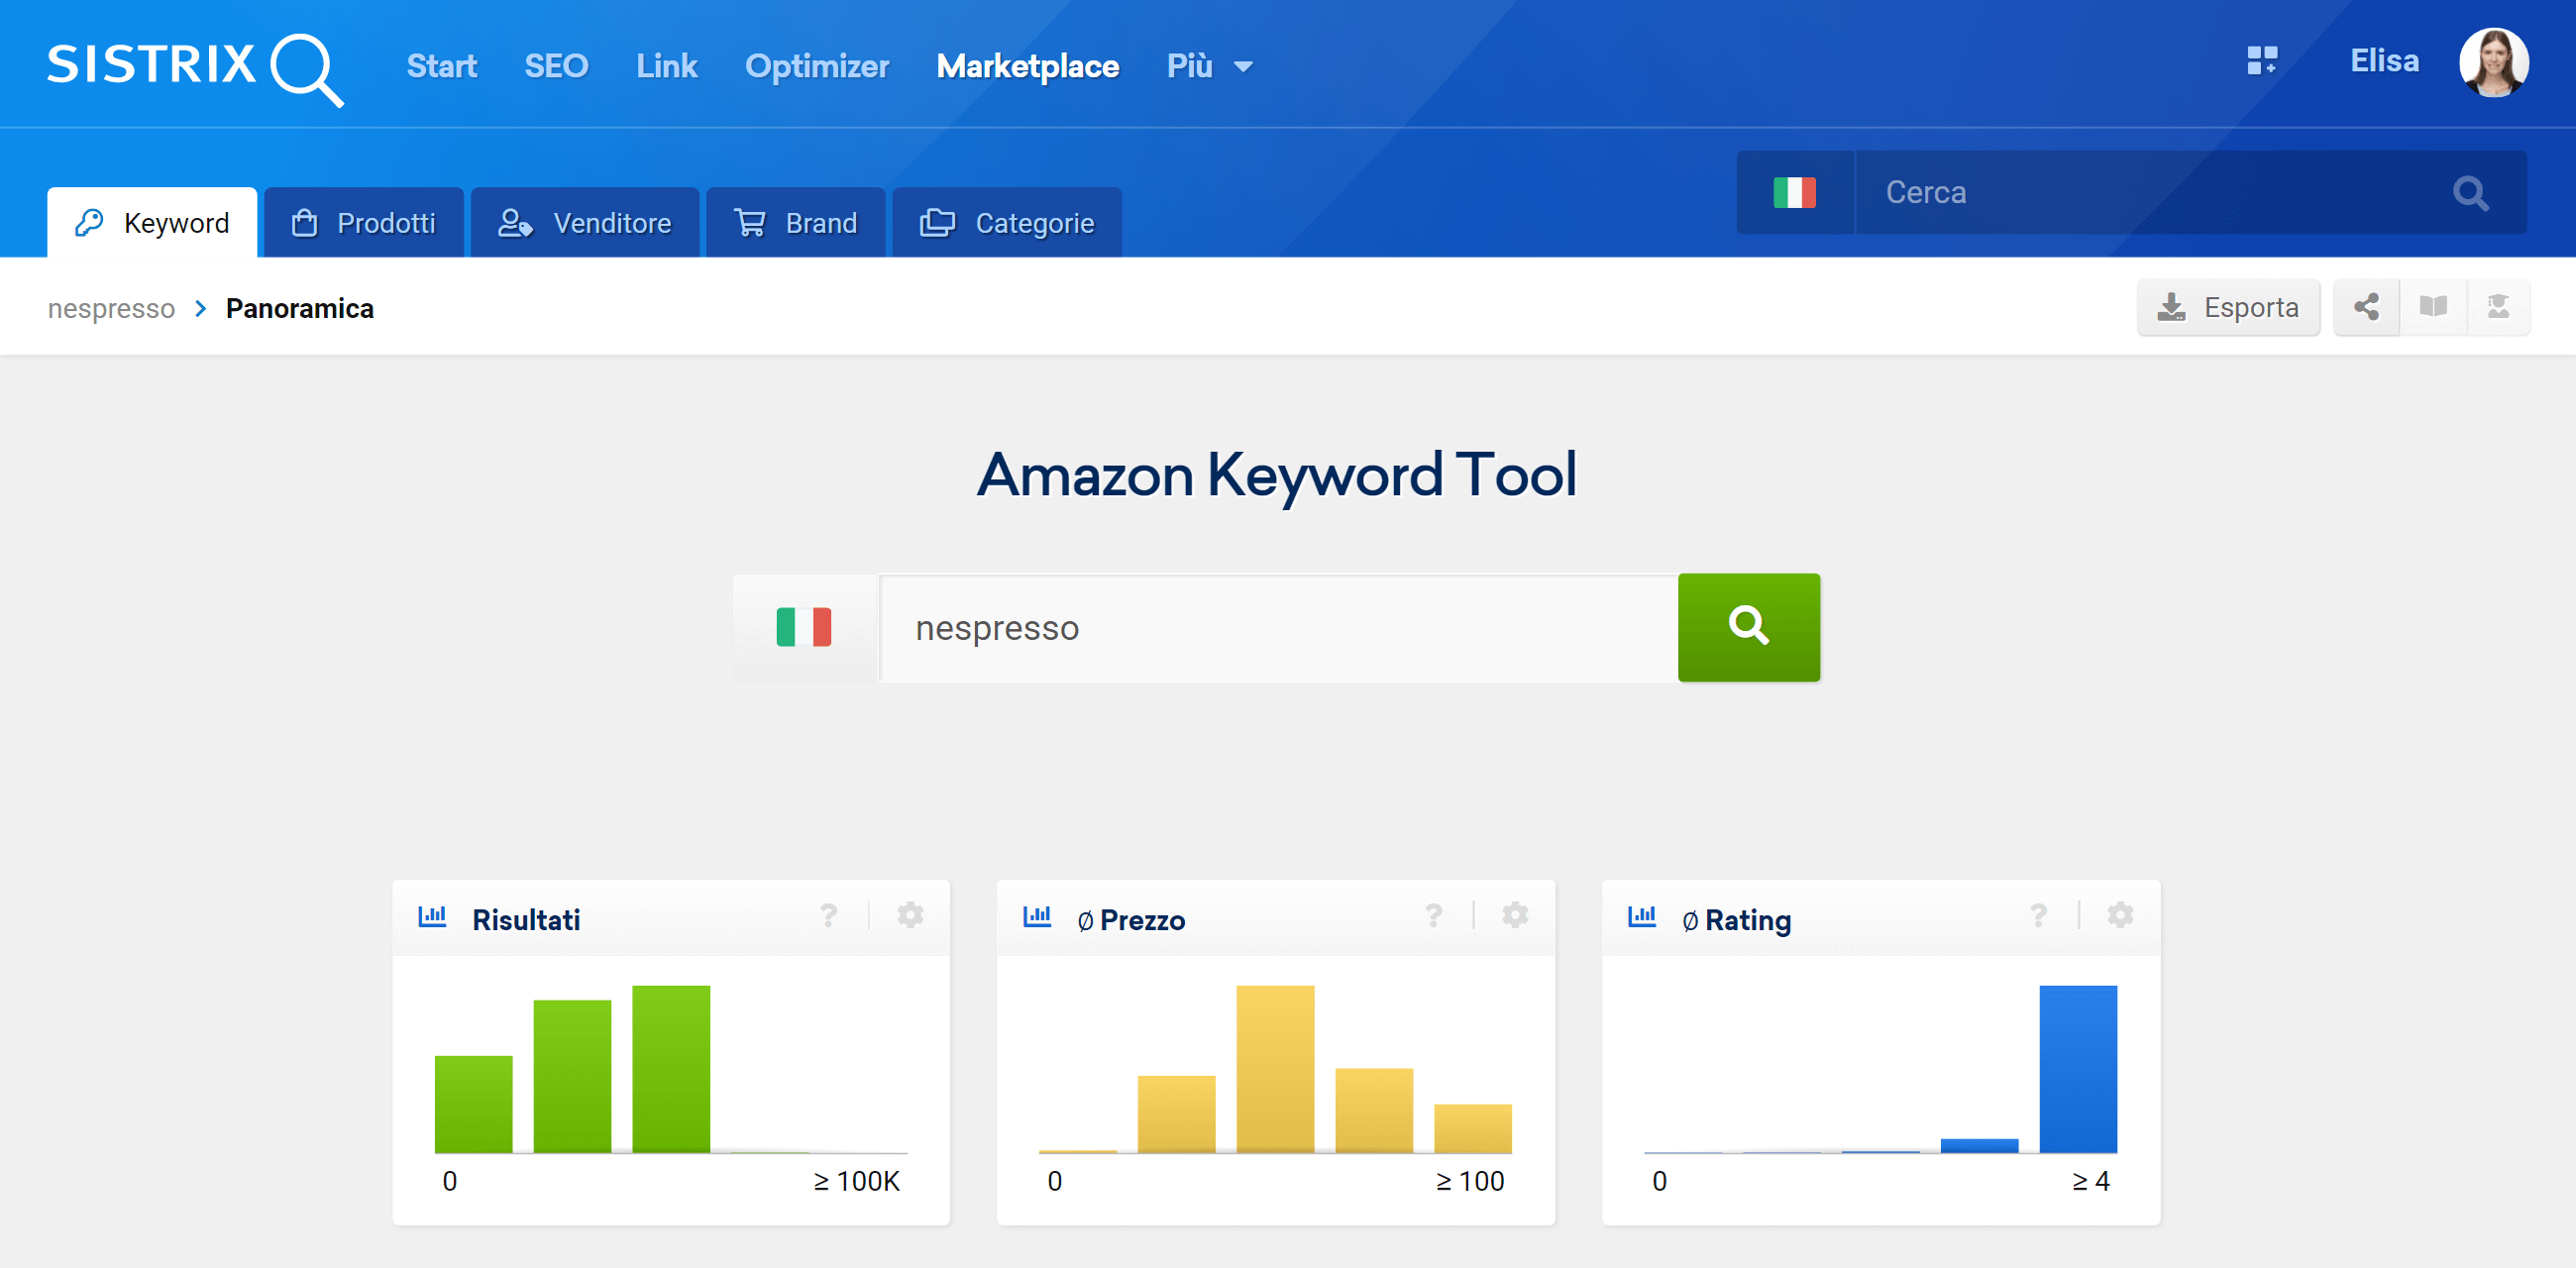 L'Amazon Keyword Tool di SISTRIX